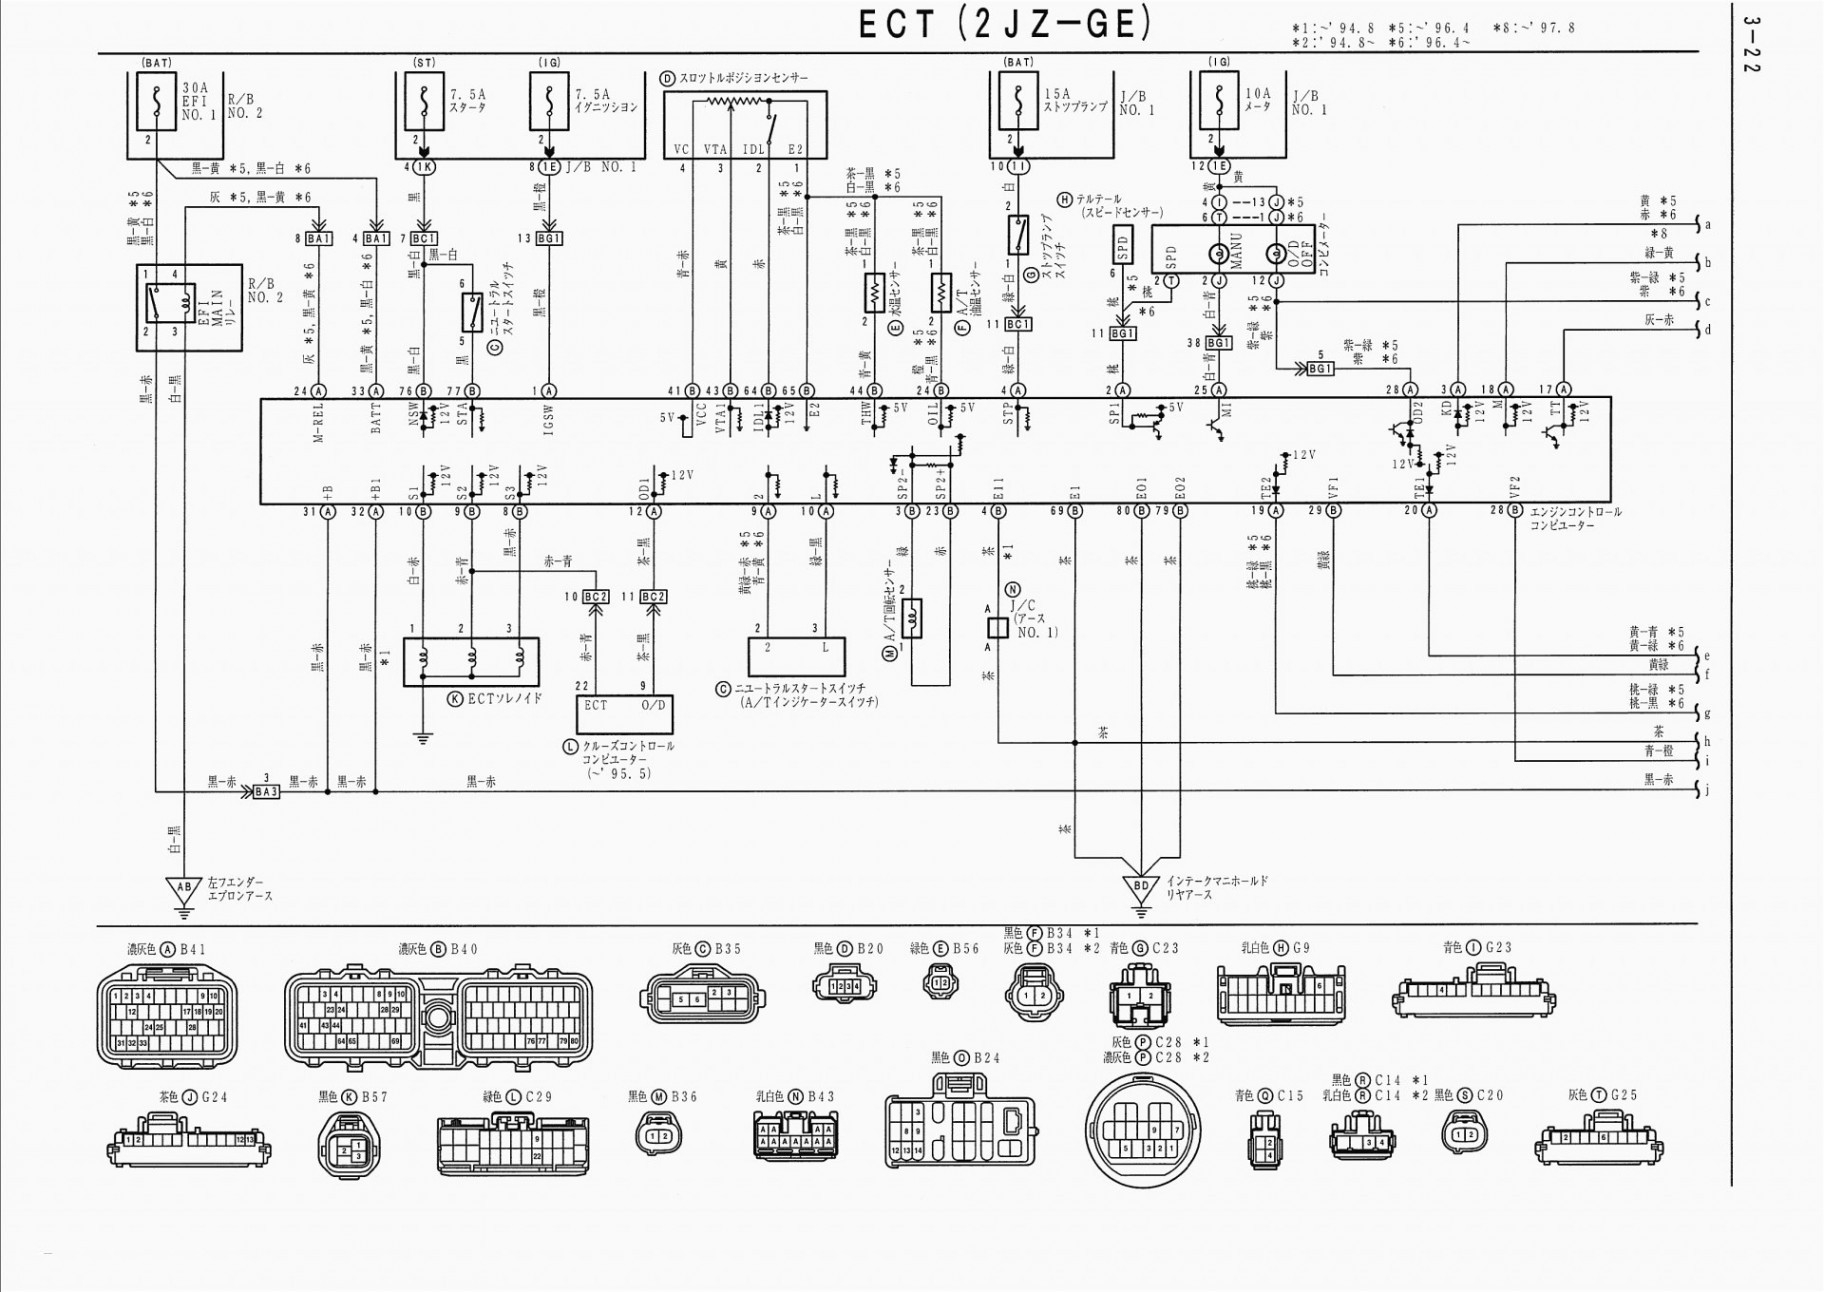 on on on switch wiring diagram Download-Wiring Diagram with Switch Inspirational Switch Wiring Diagram – Network Switch Diagram Fresh Web Diagram 0d 15-d